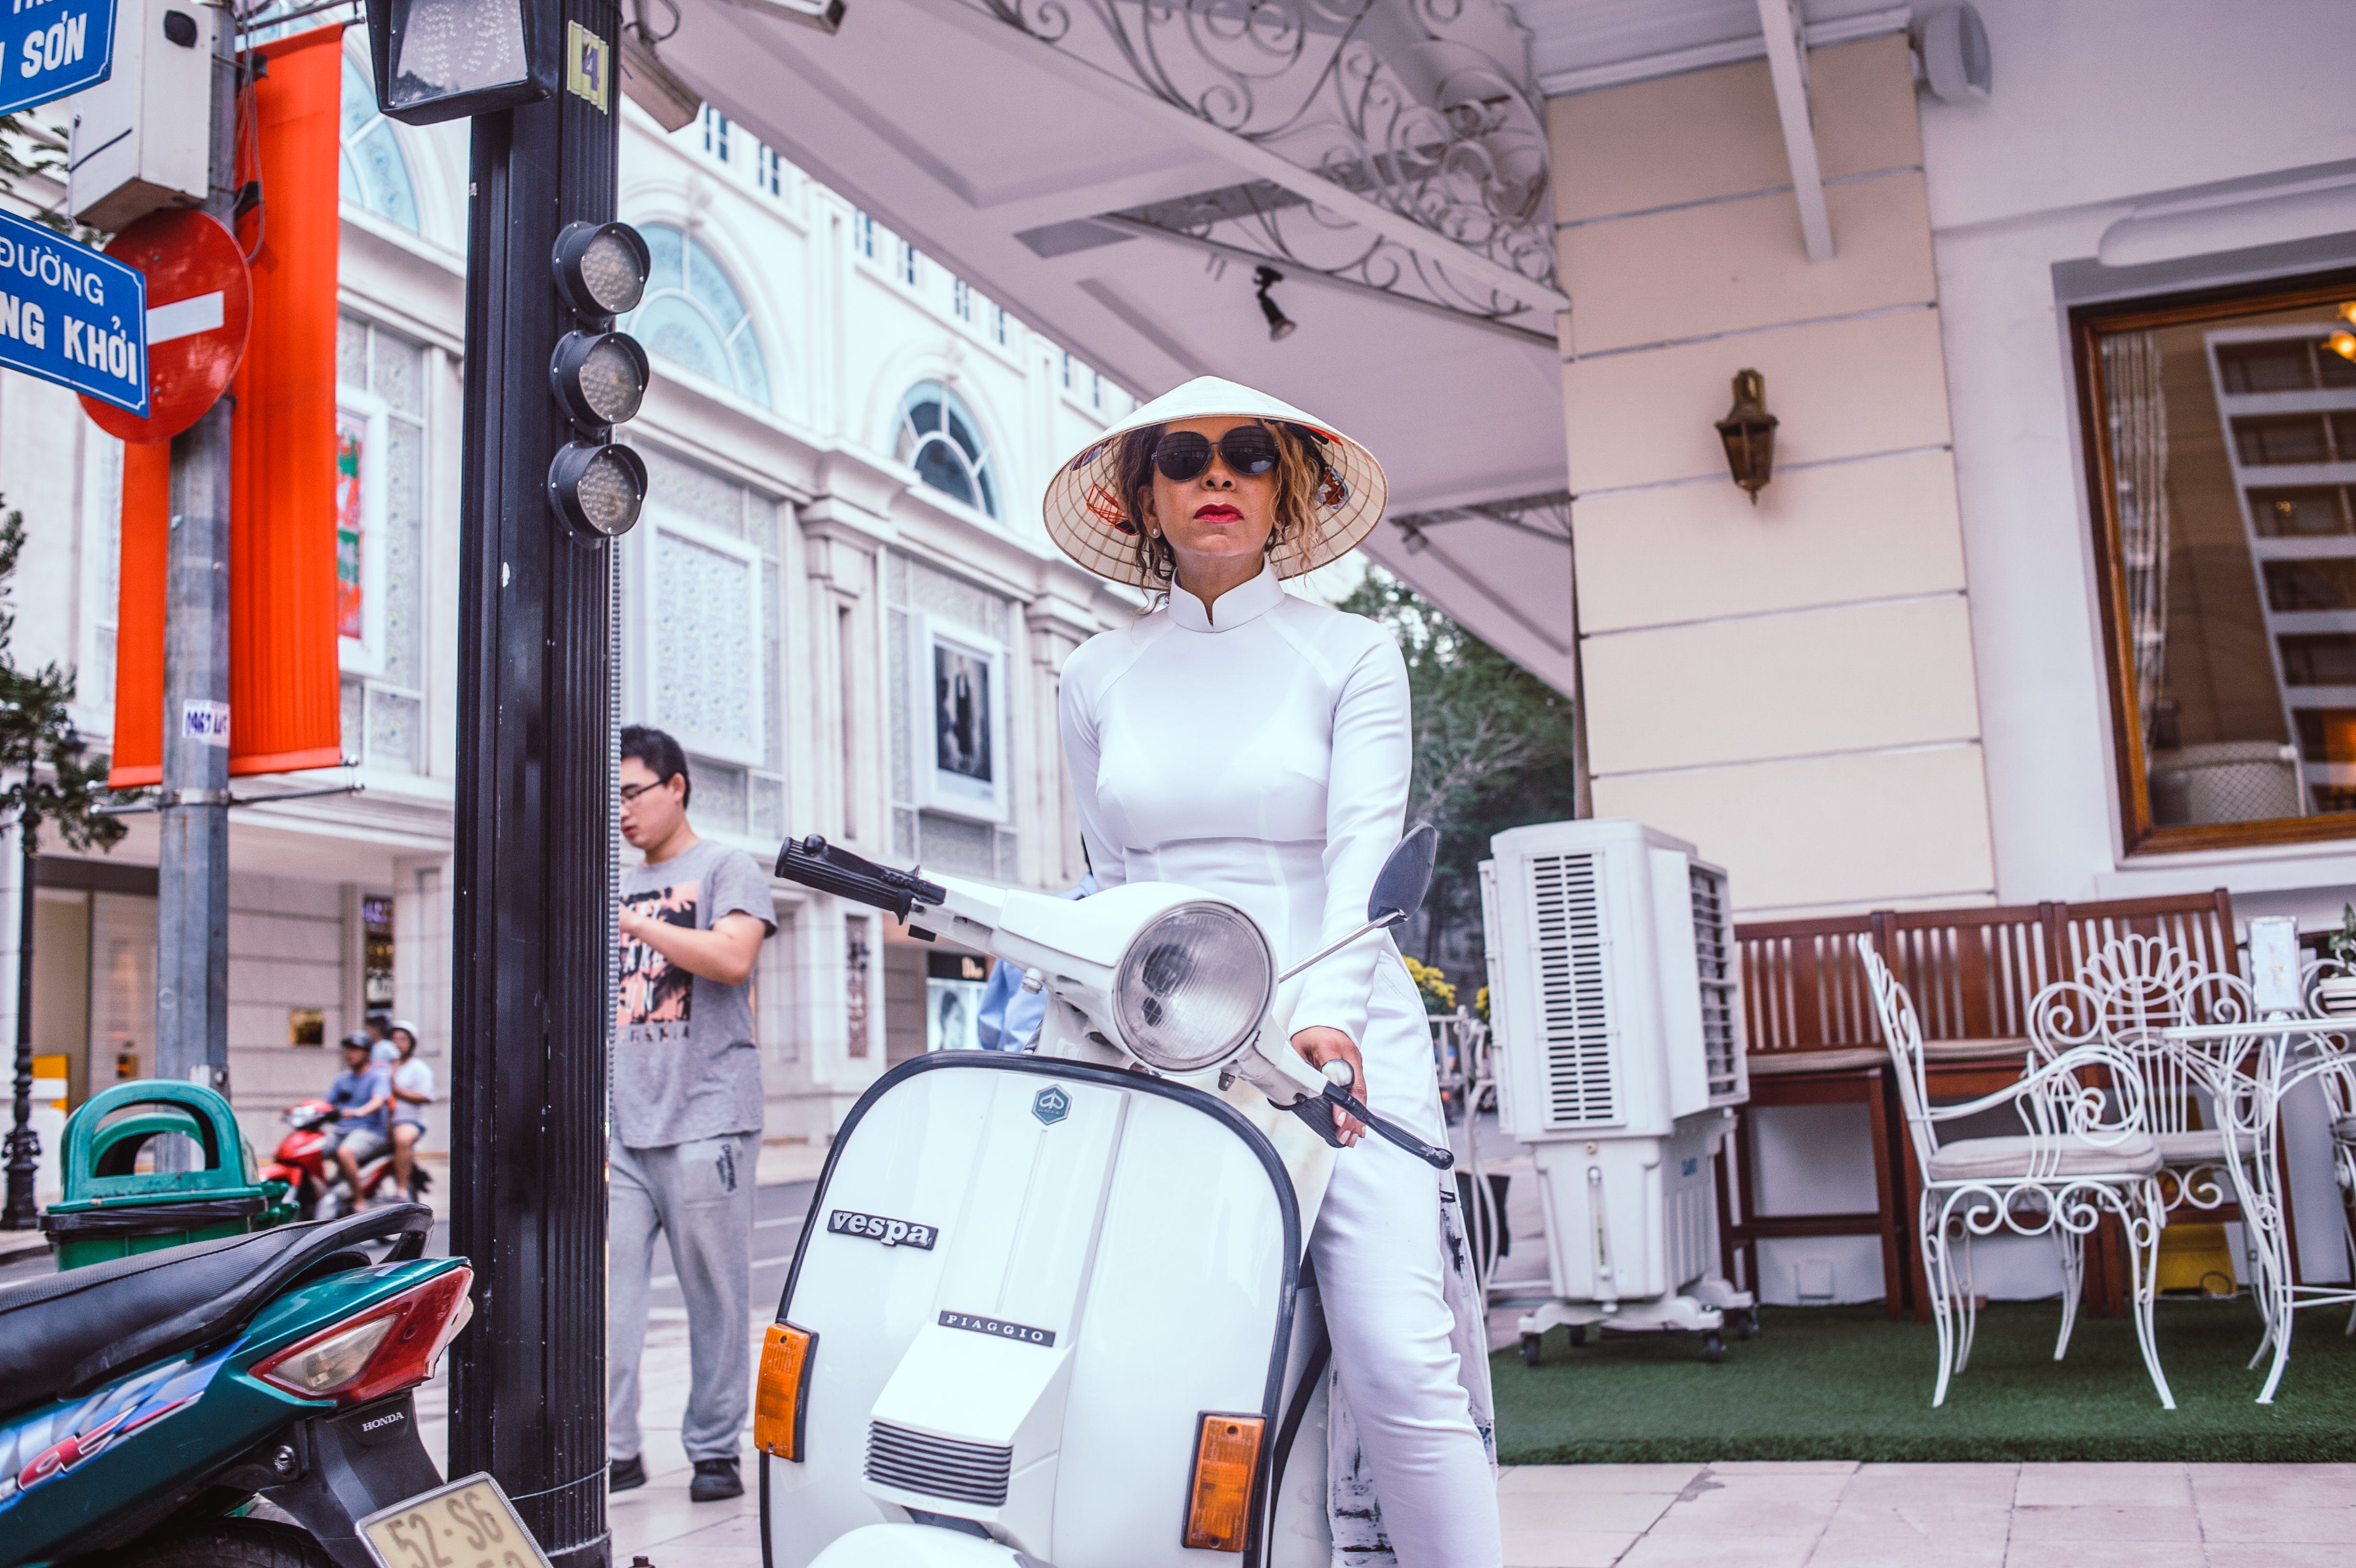 Woman Sitting on Motor Scooter